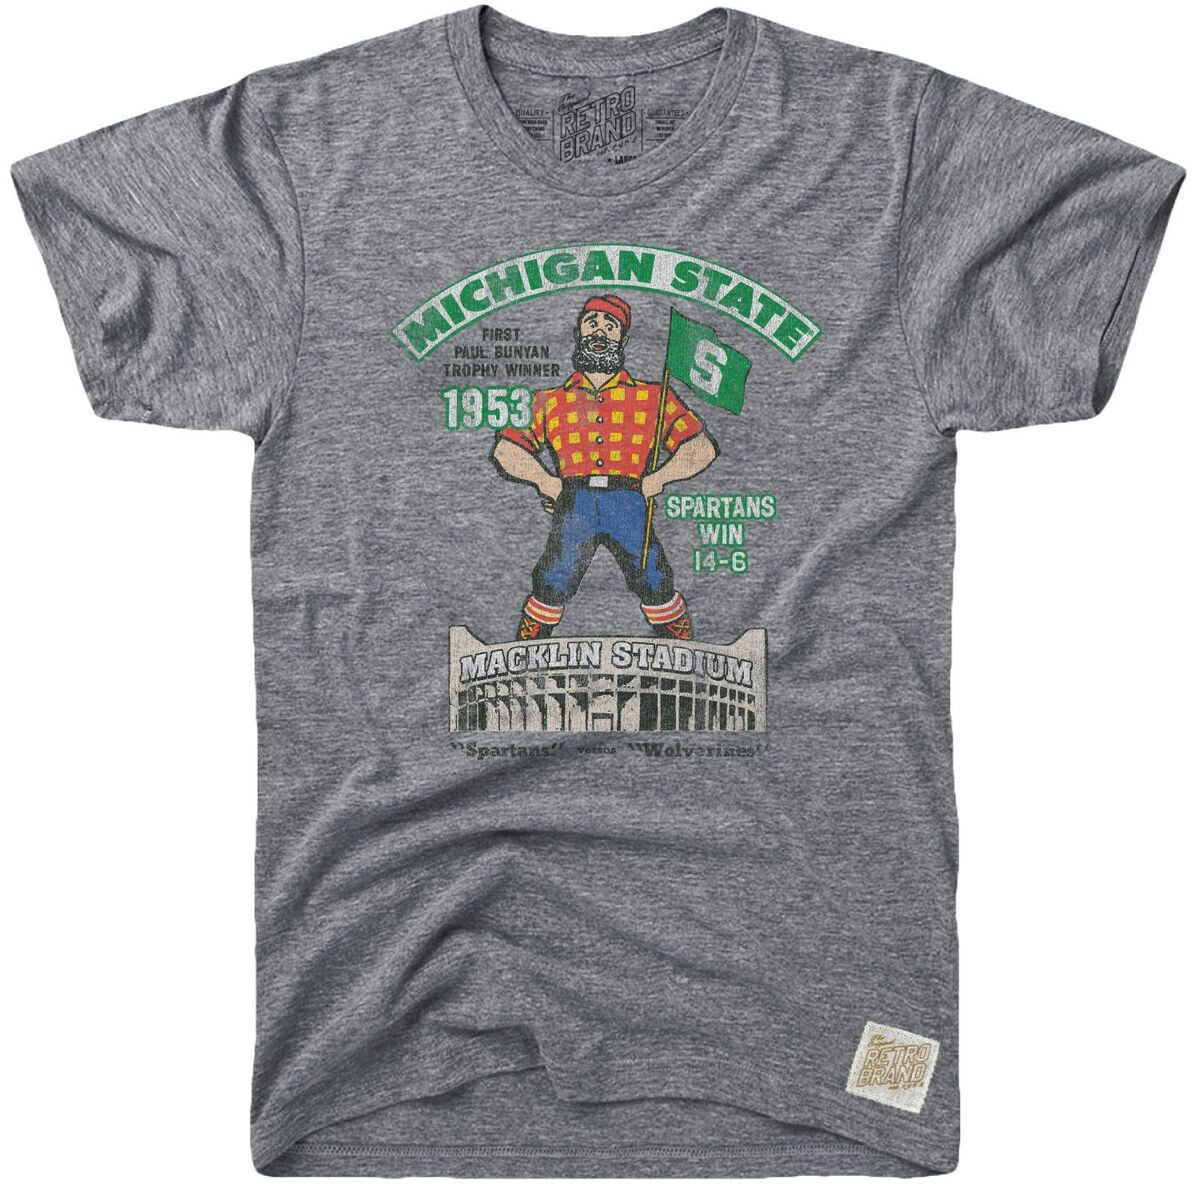 Michigan State 1953 Tri-Blend Tee